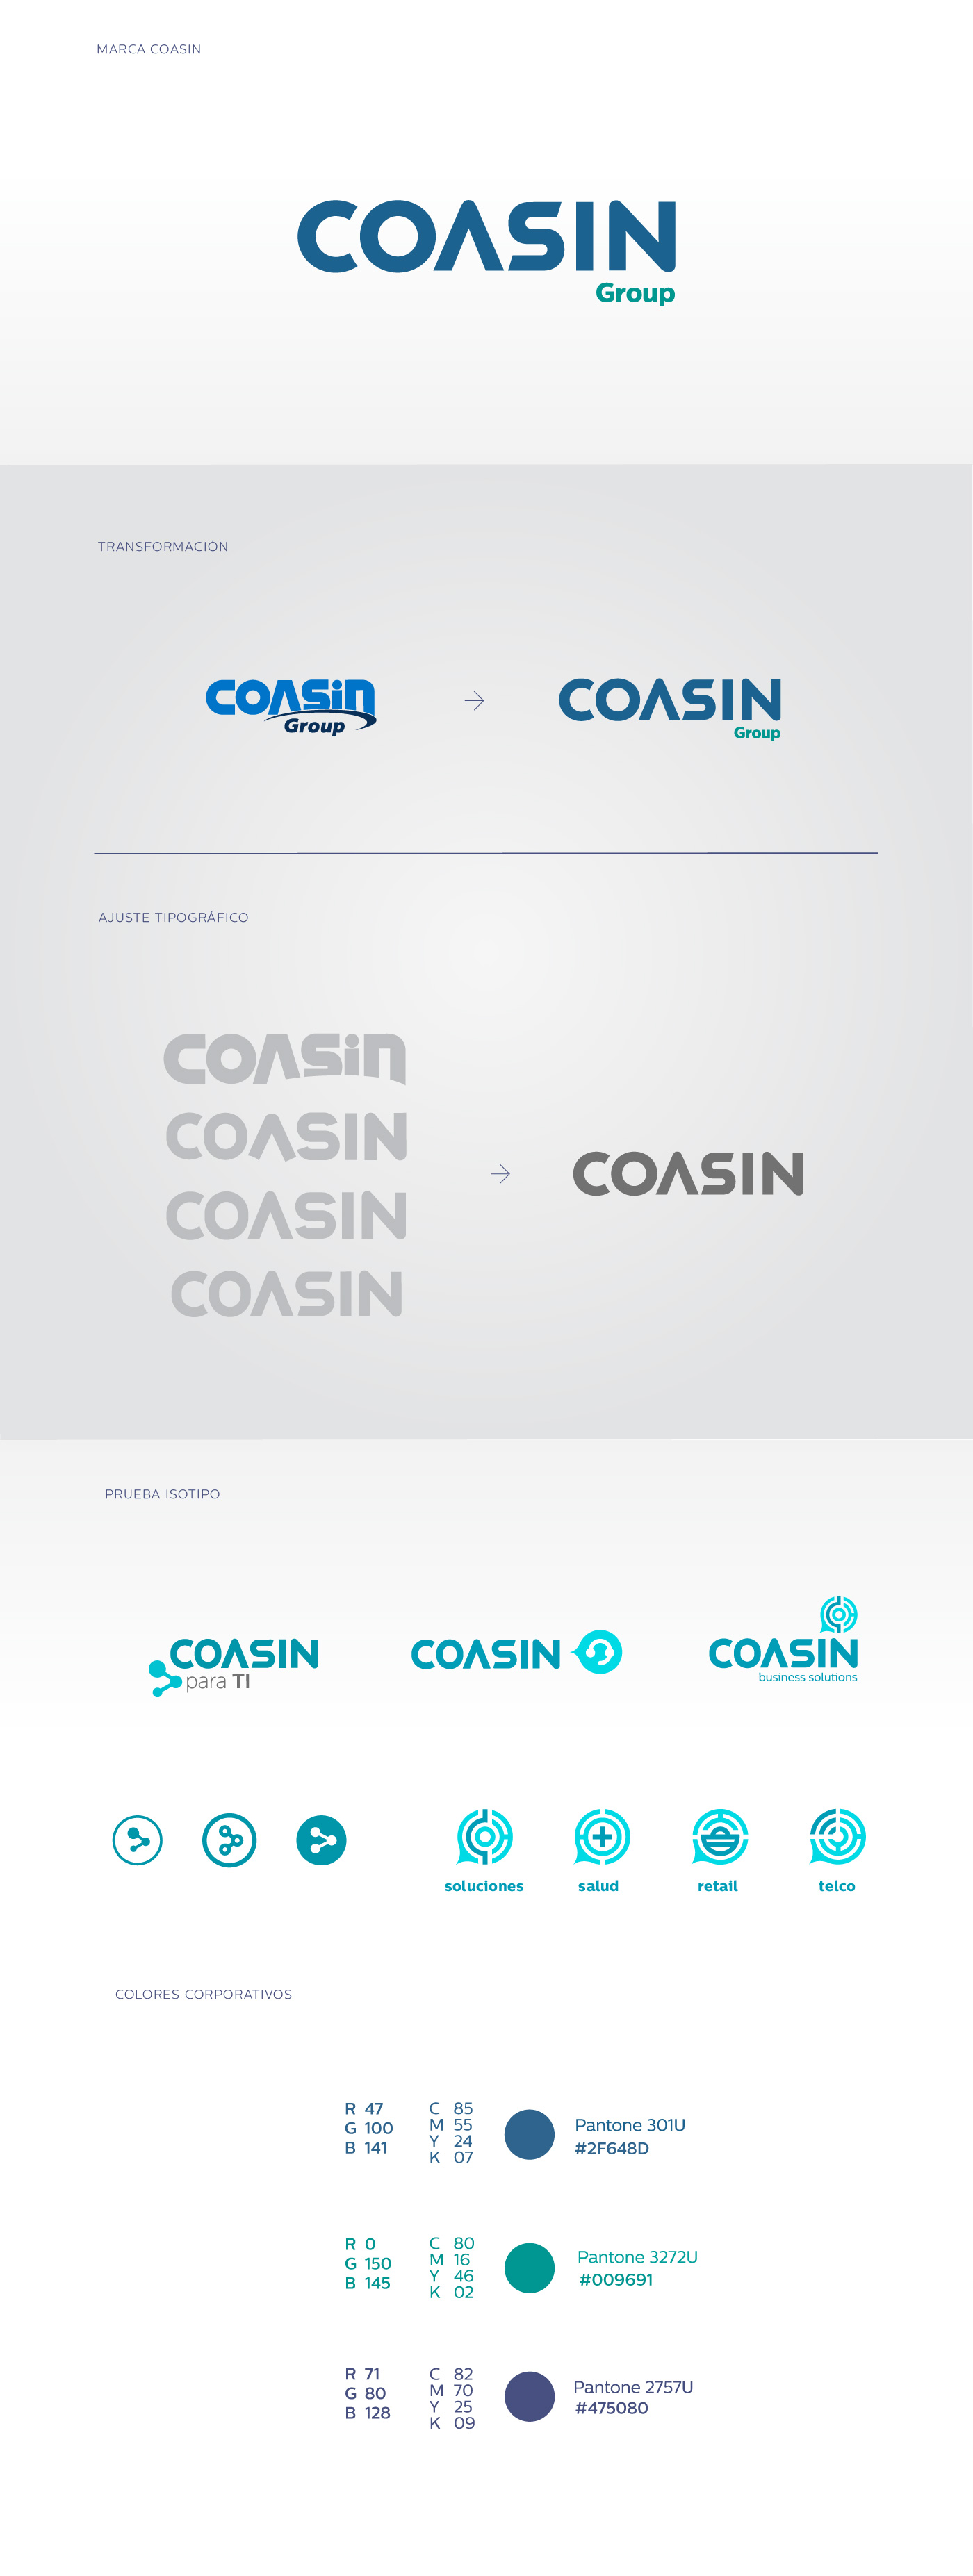 coasin_rebrand-01.jpg